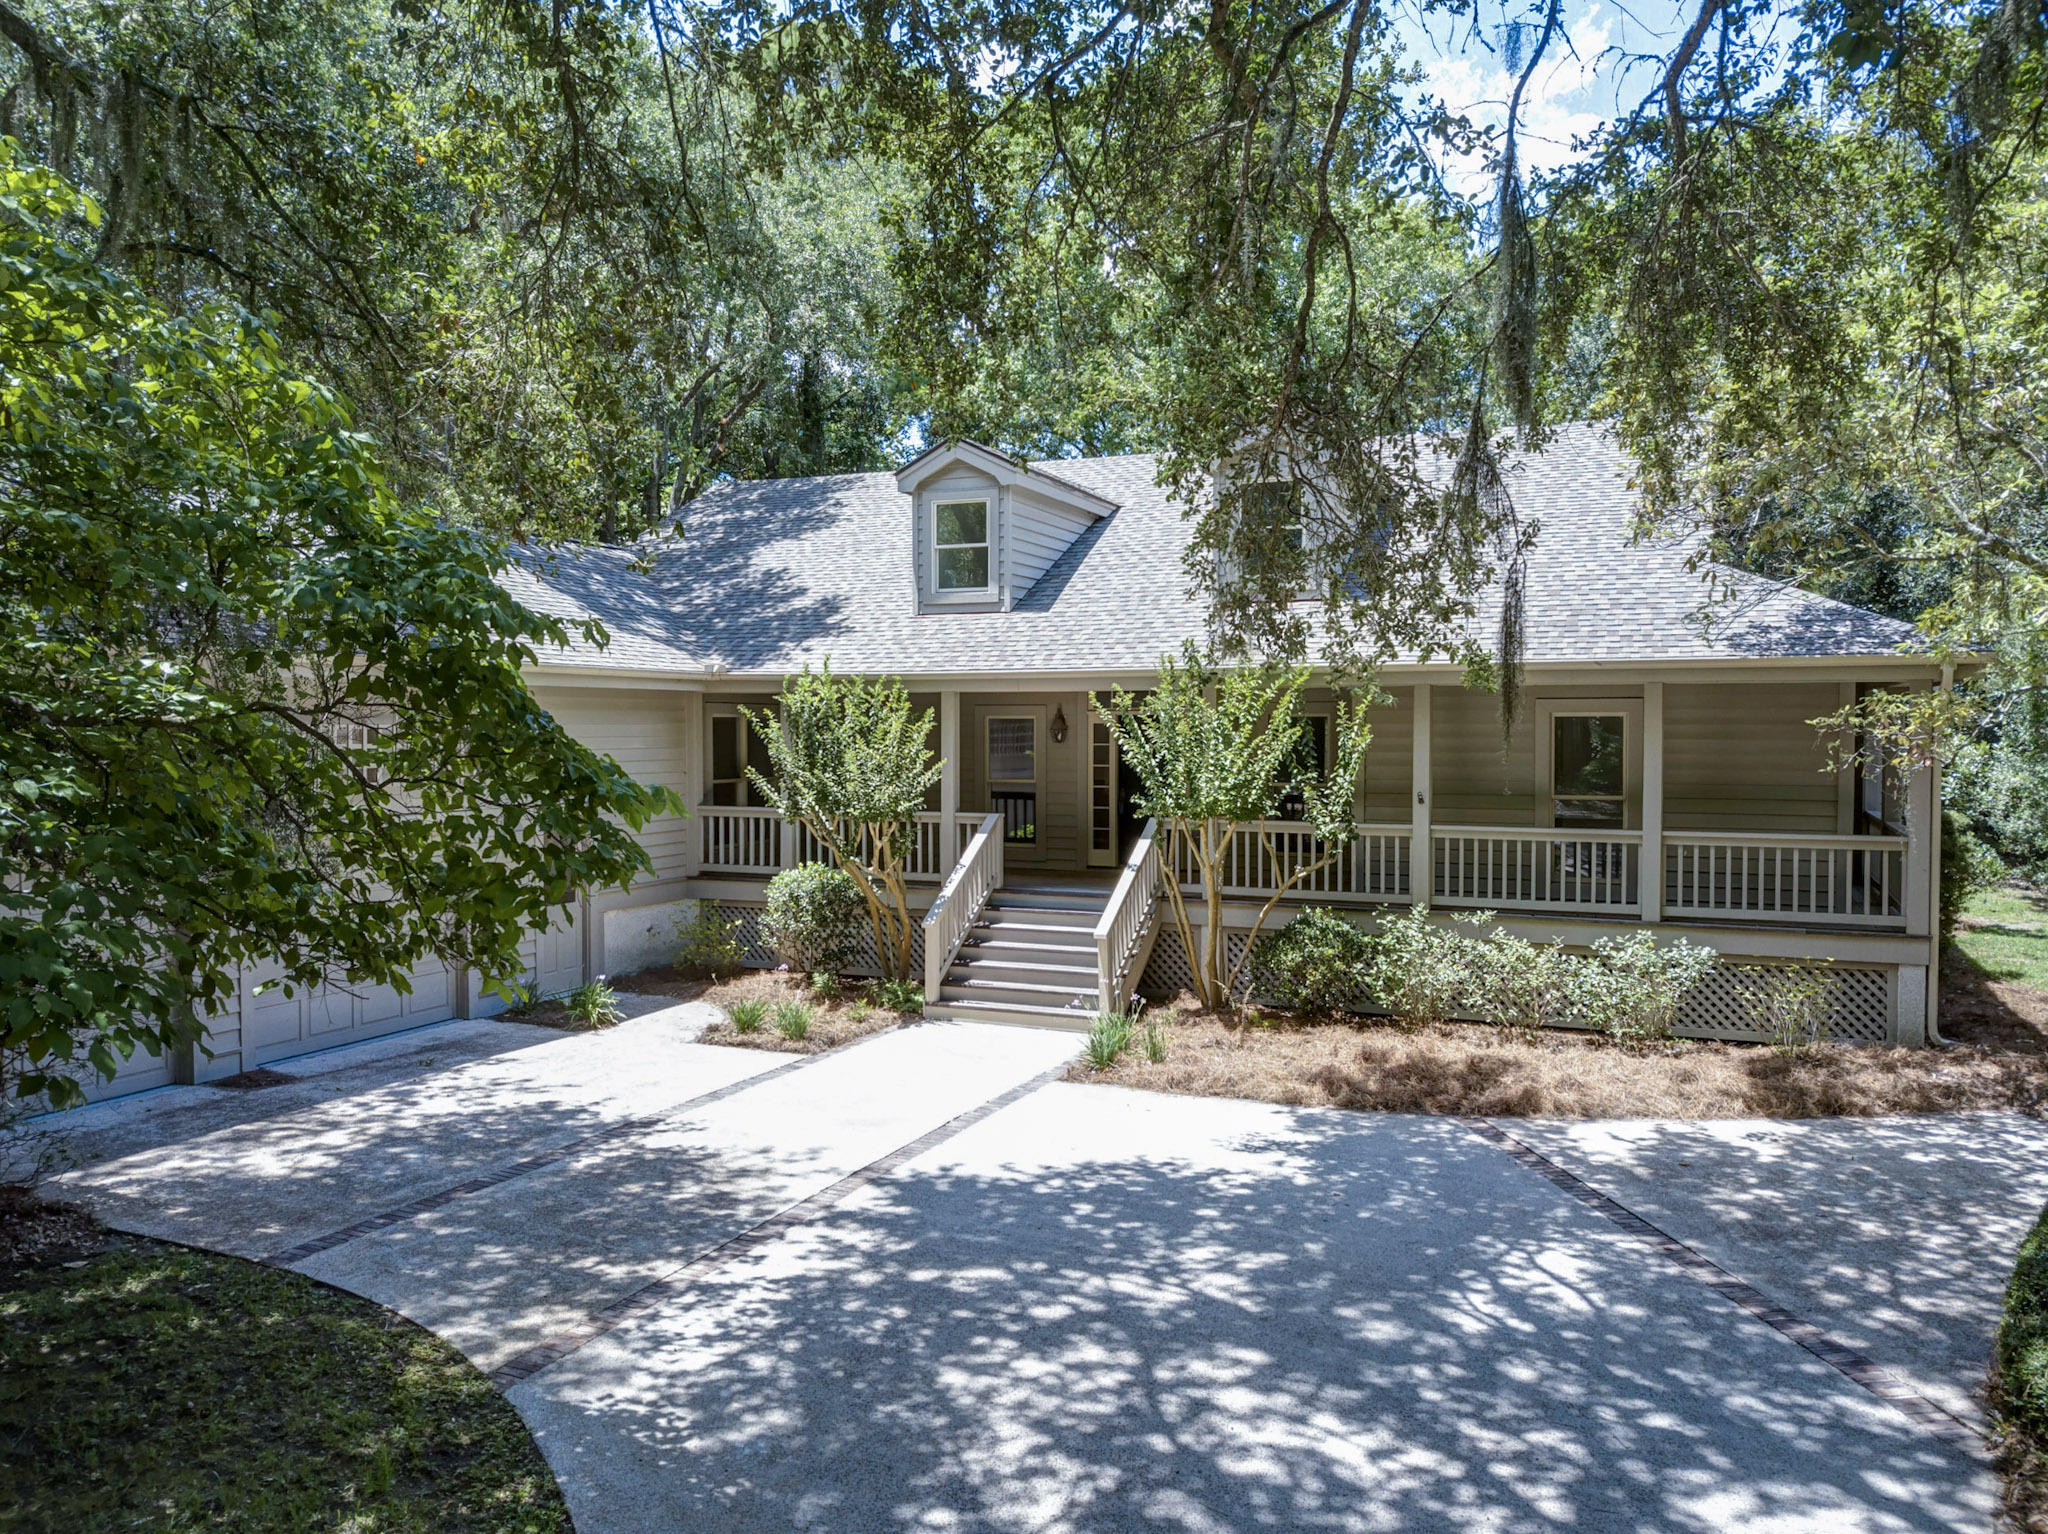 245 Glen Abbey Kiawah Island, SC 29455